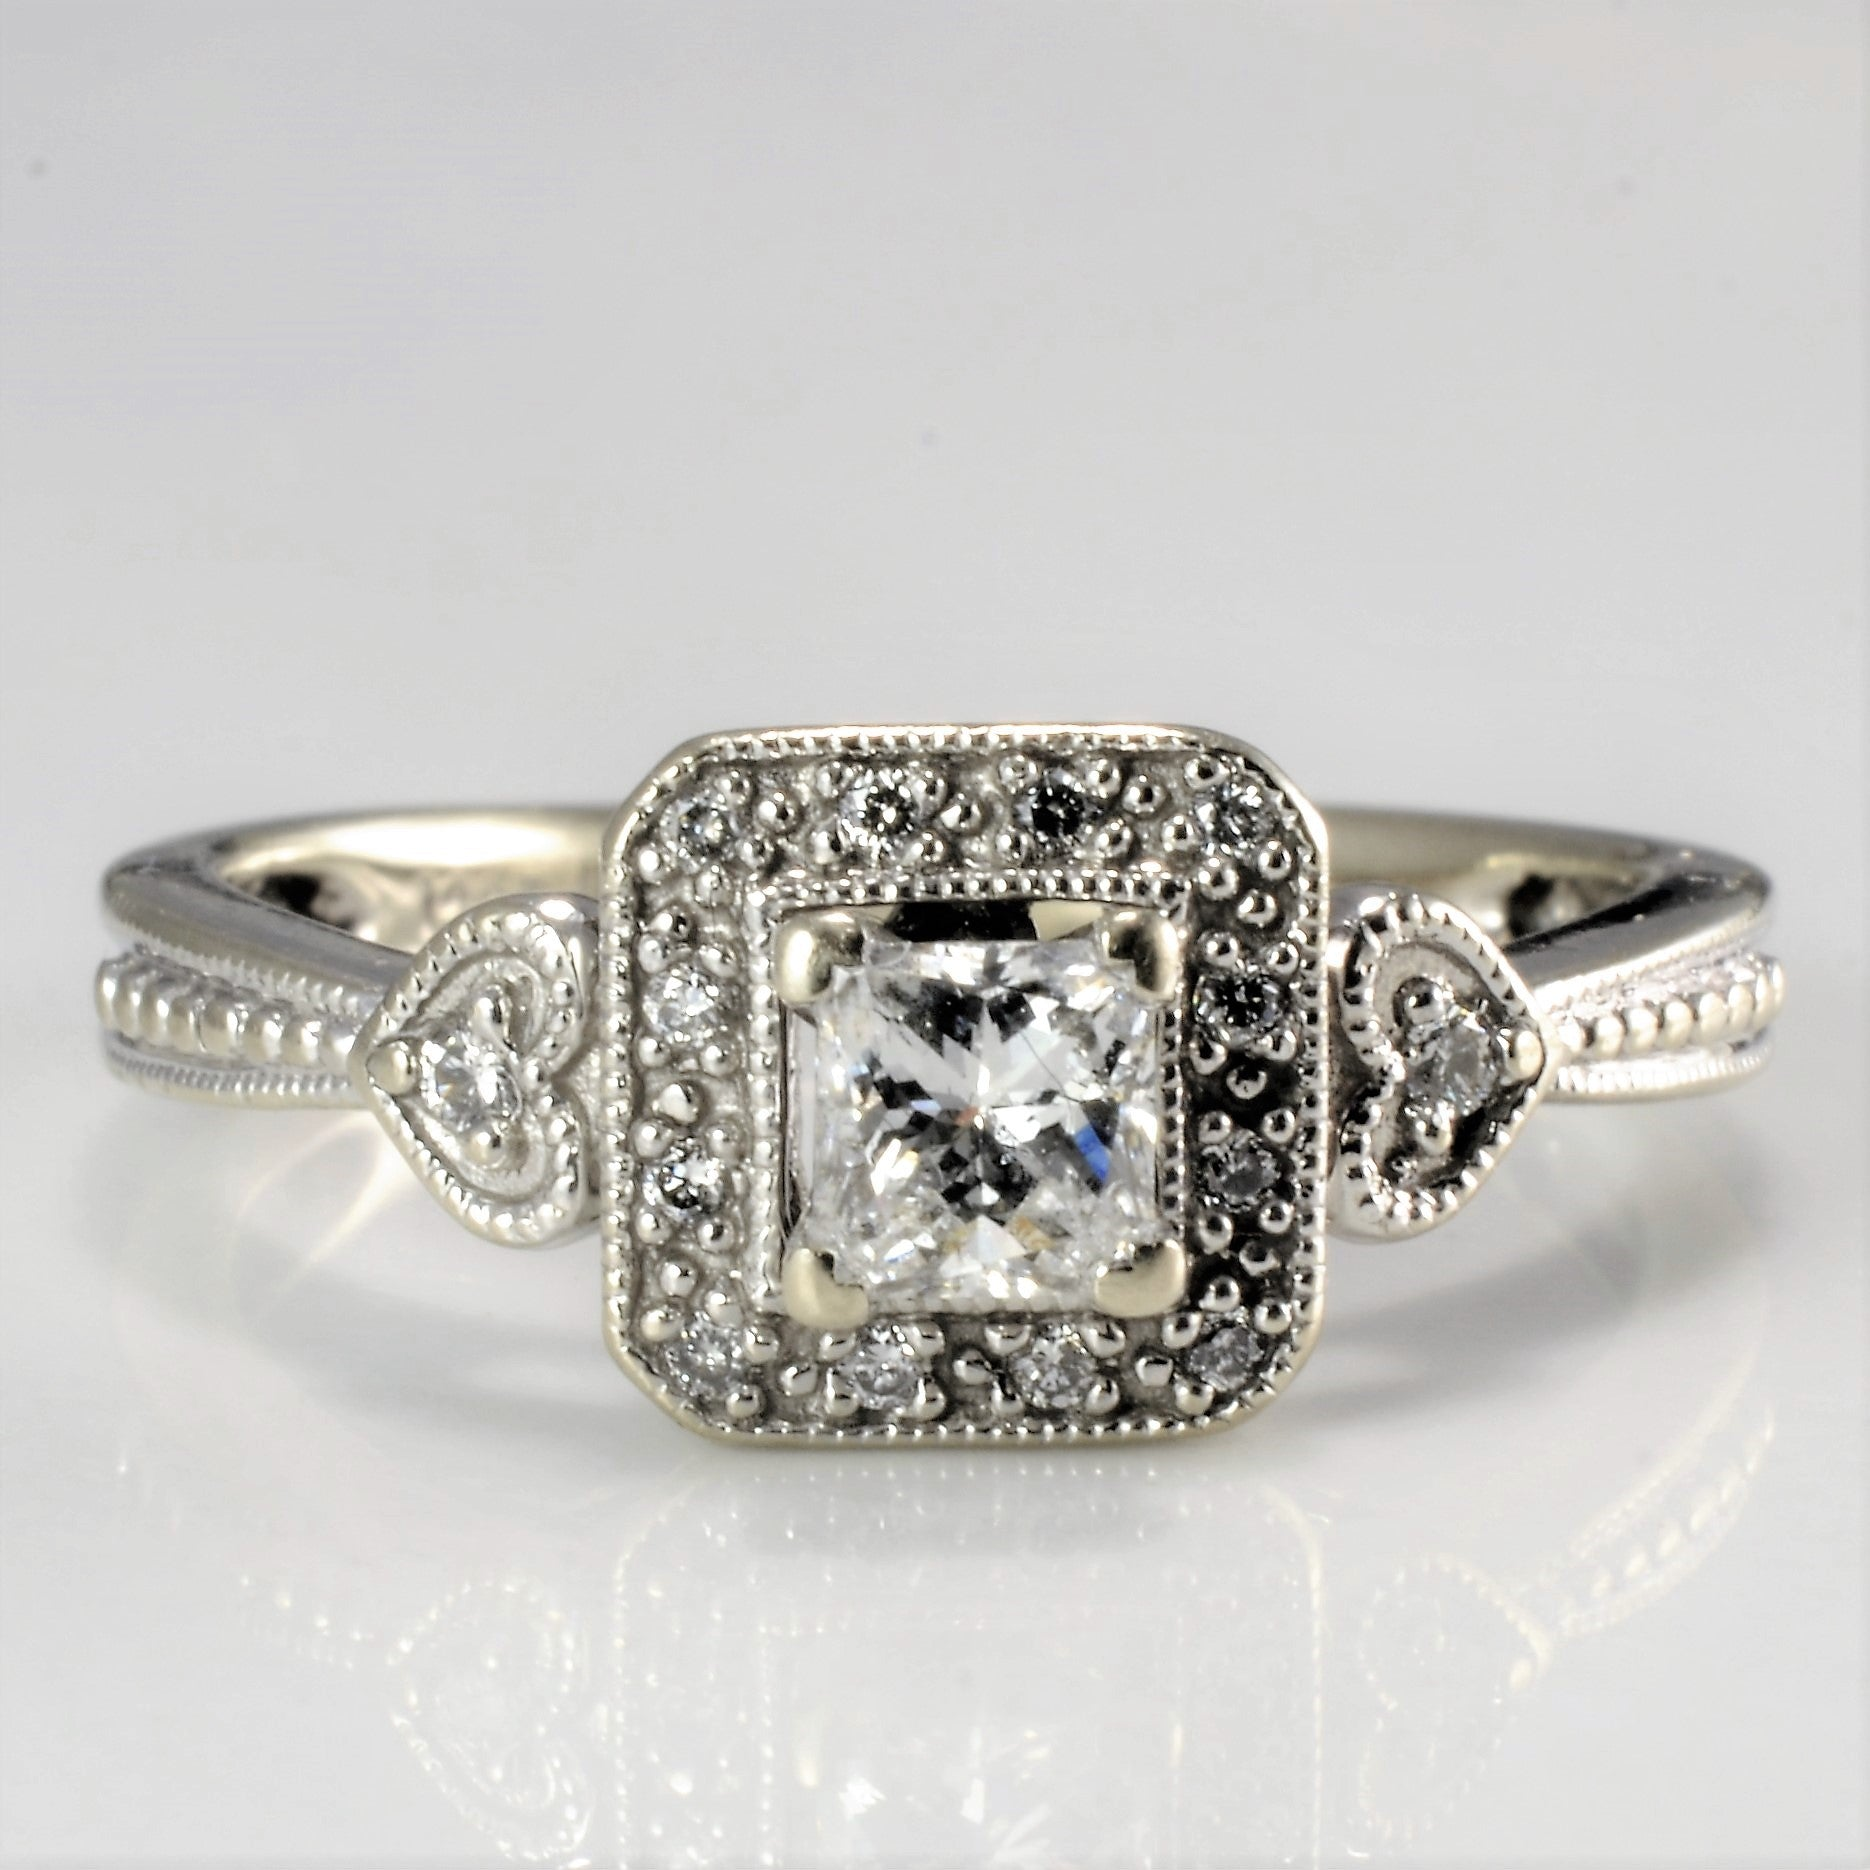 Milgrain Detailed Halo Diamond Engagement Ring | 0.35 ctw, SZ 6 |